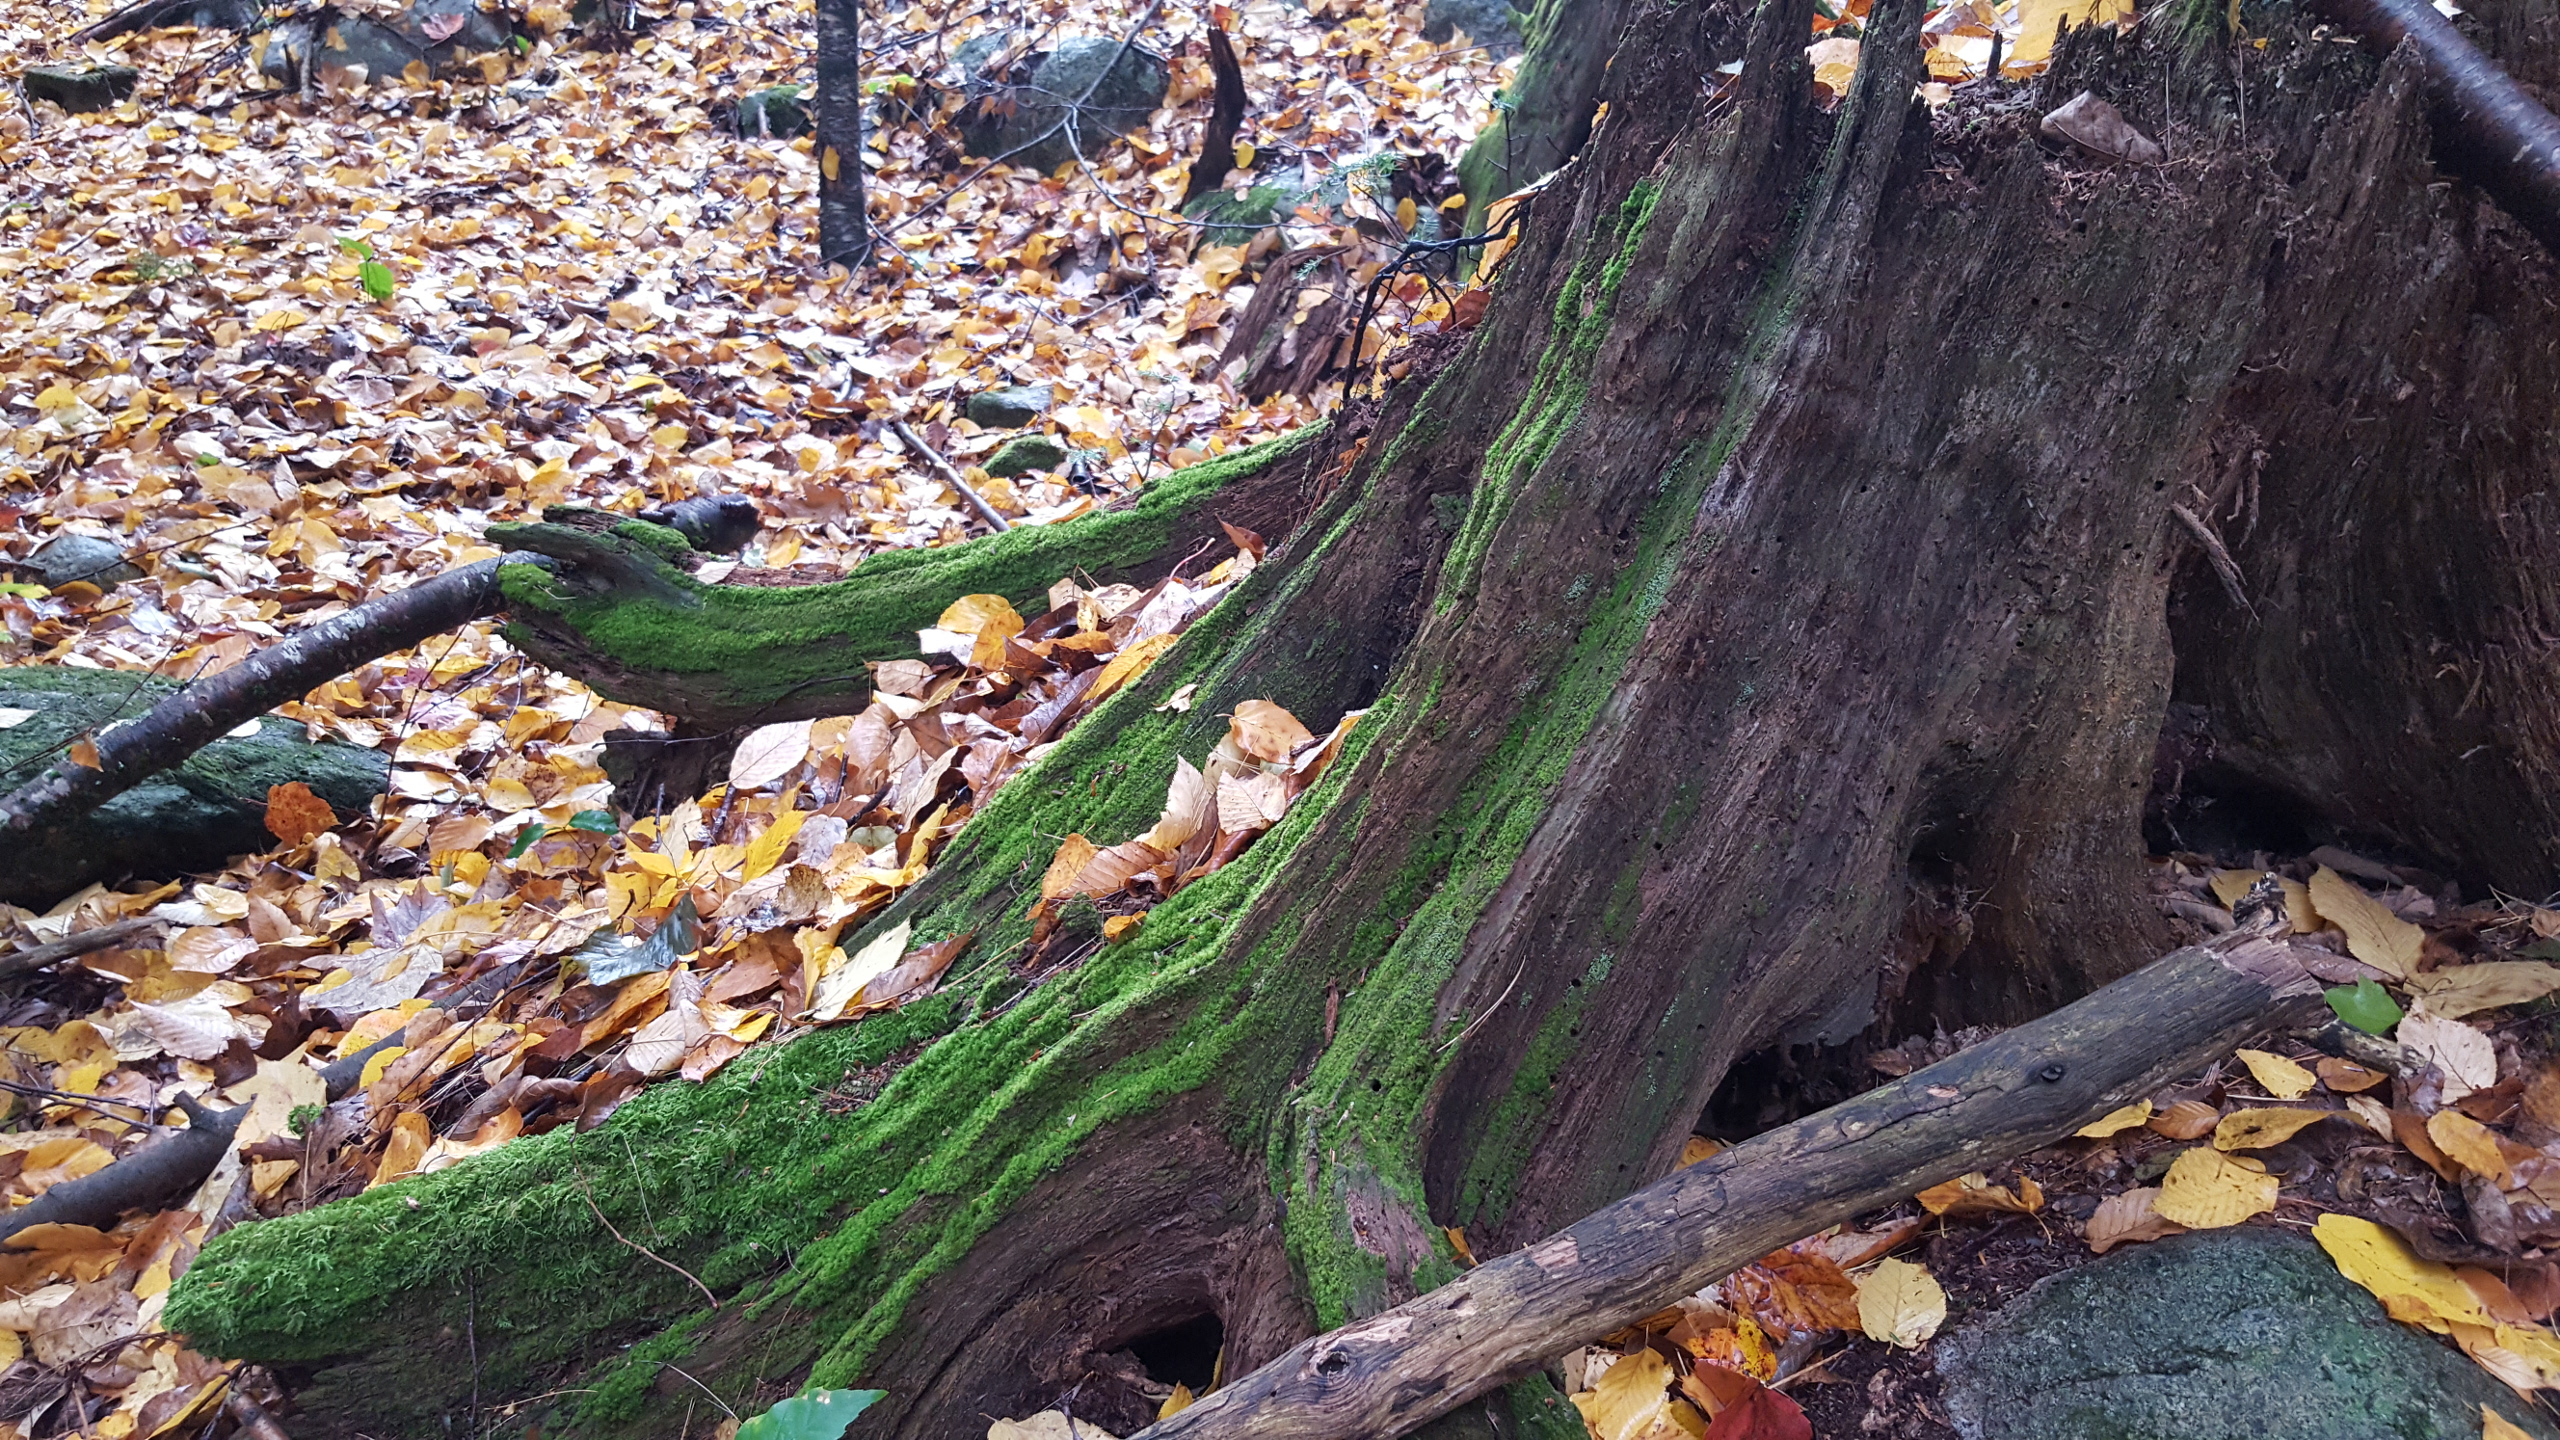 A tree stump with moss, surrounded by fall leaves.